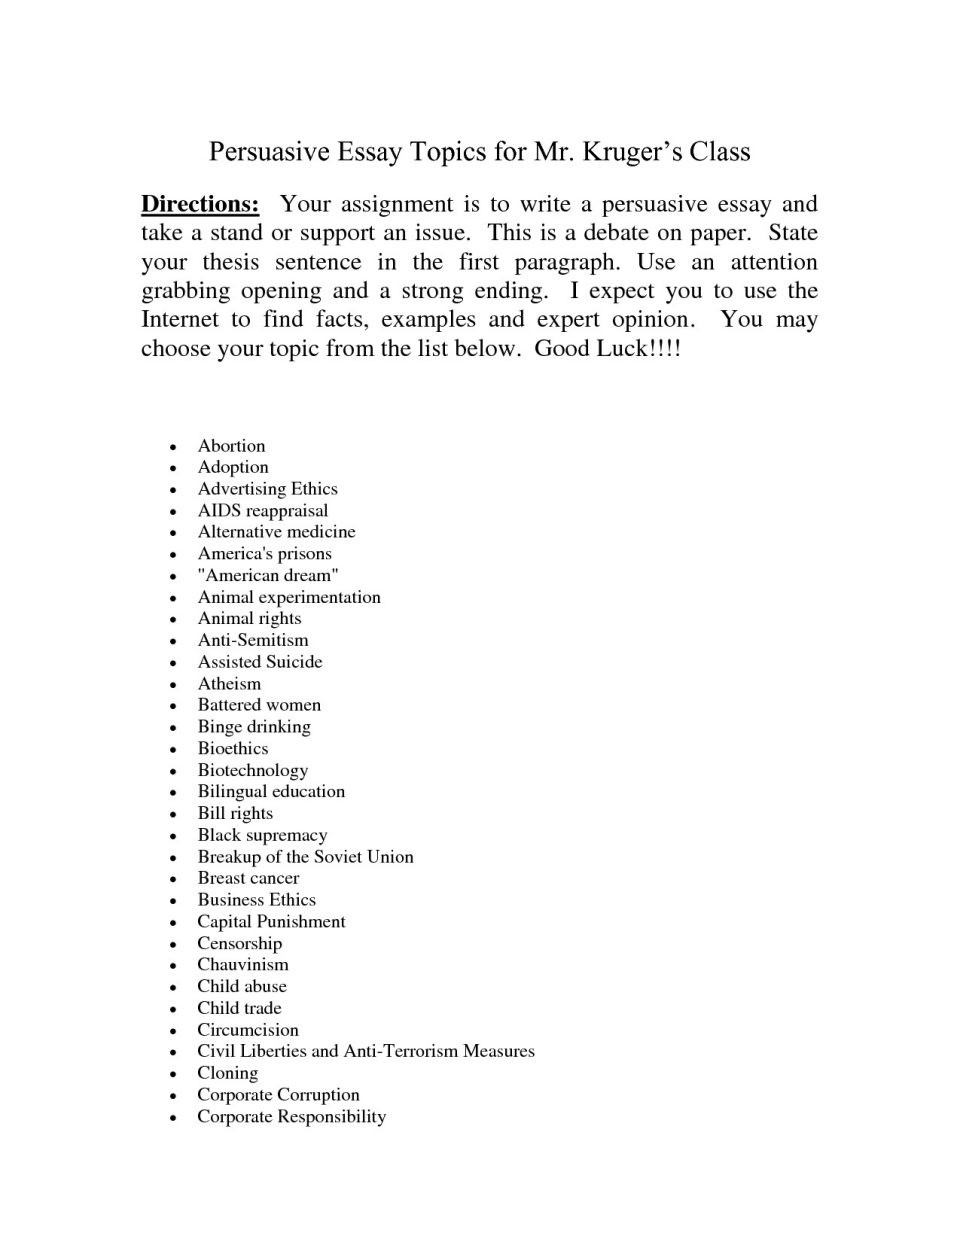 011 Research Paper Good Topic For Essay Barca Fontanacountryinn Within Persuasive Narrative Topics To Write Abo Easy About Personal Descriptive Informative Singular Best Ideas History High School Students In The Philippines 960